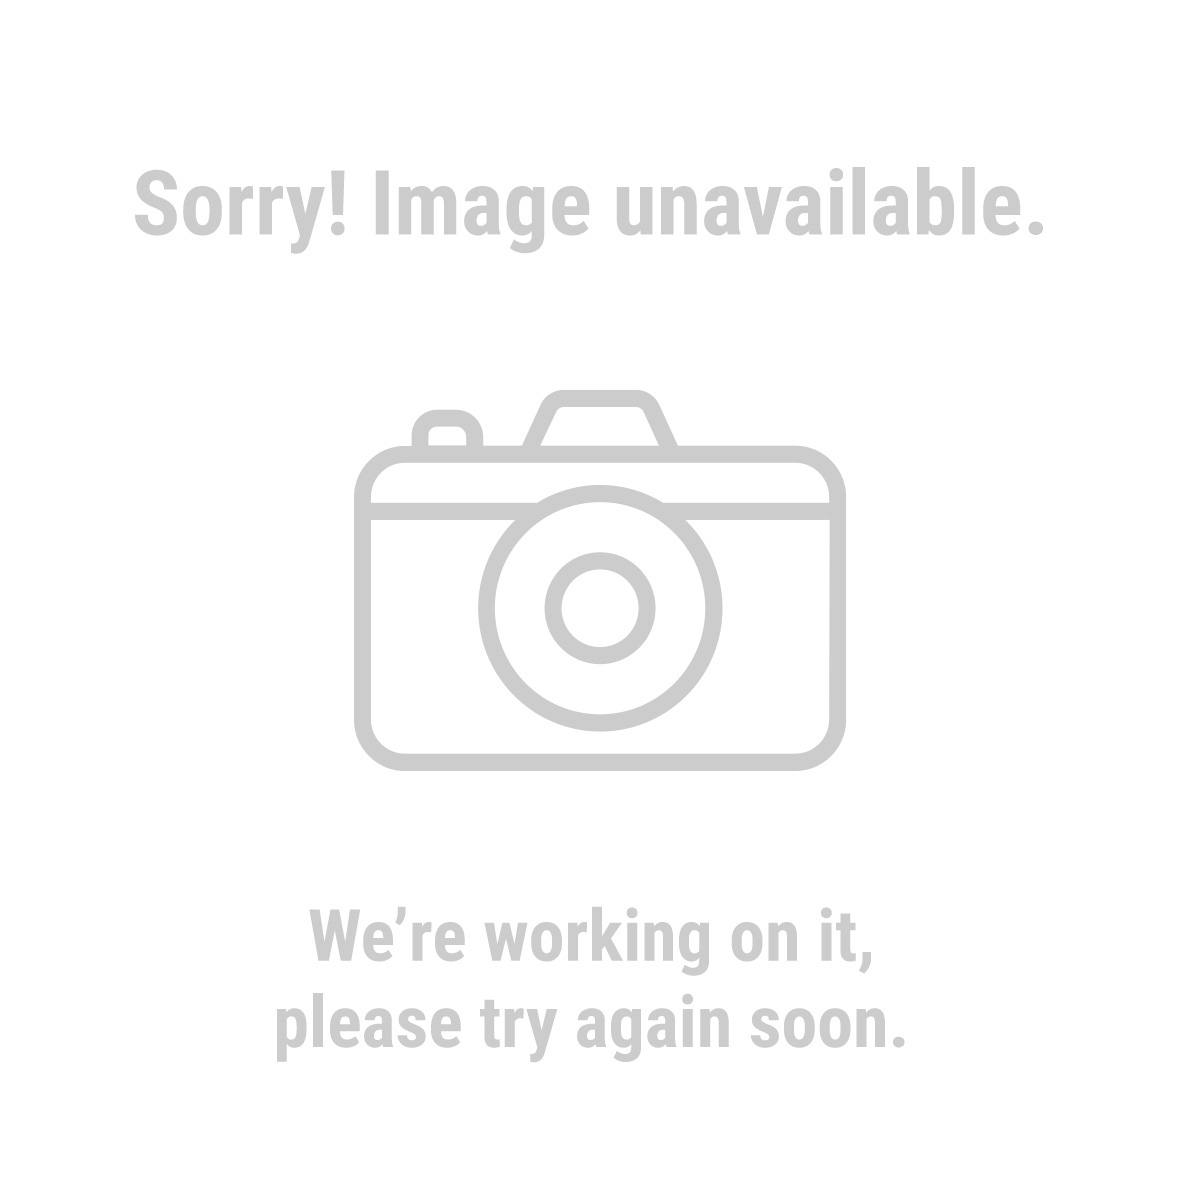 Central Pneumatic 61694 16/18 Gauge 3-in-1 Air Nailer/Stapler